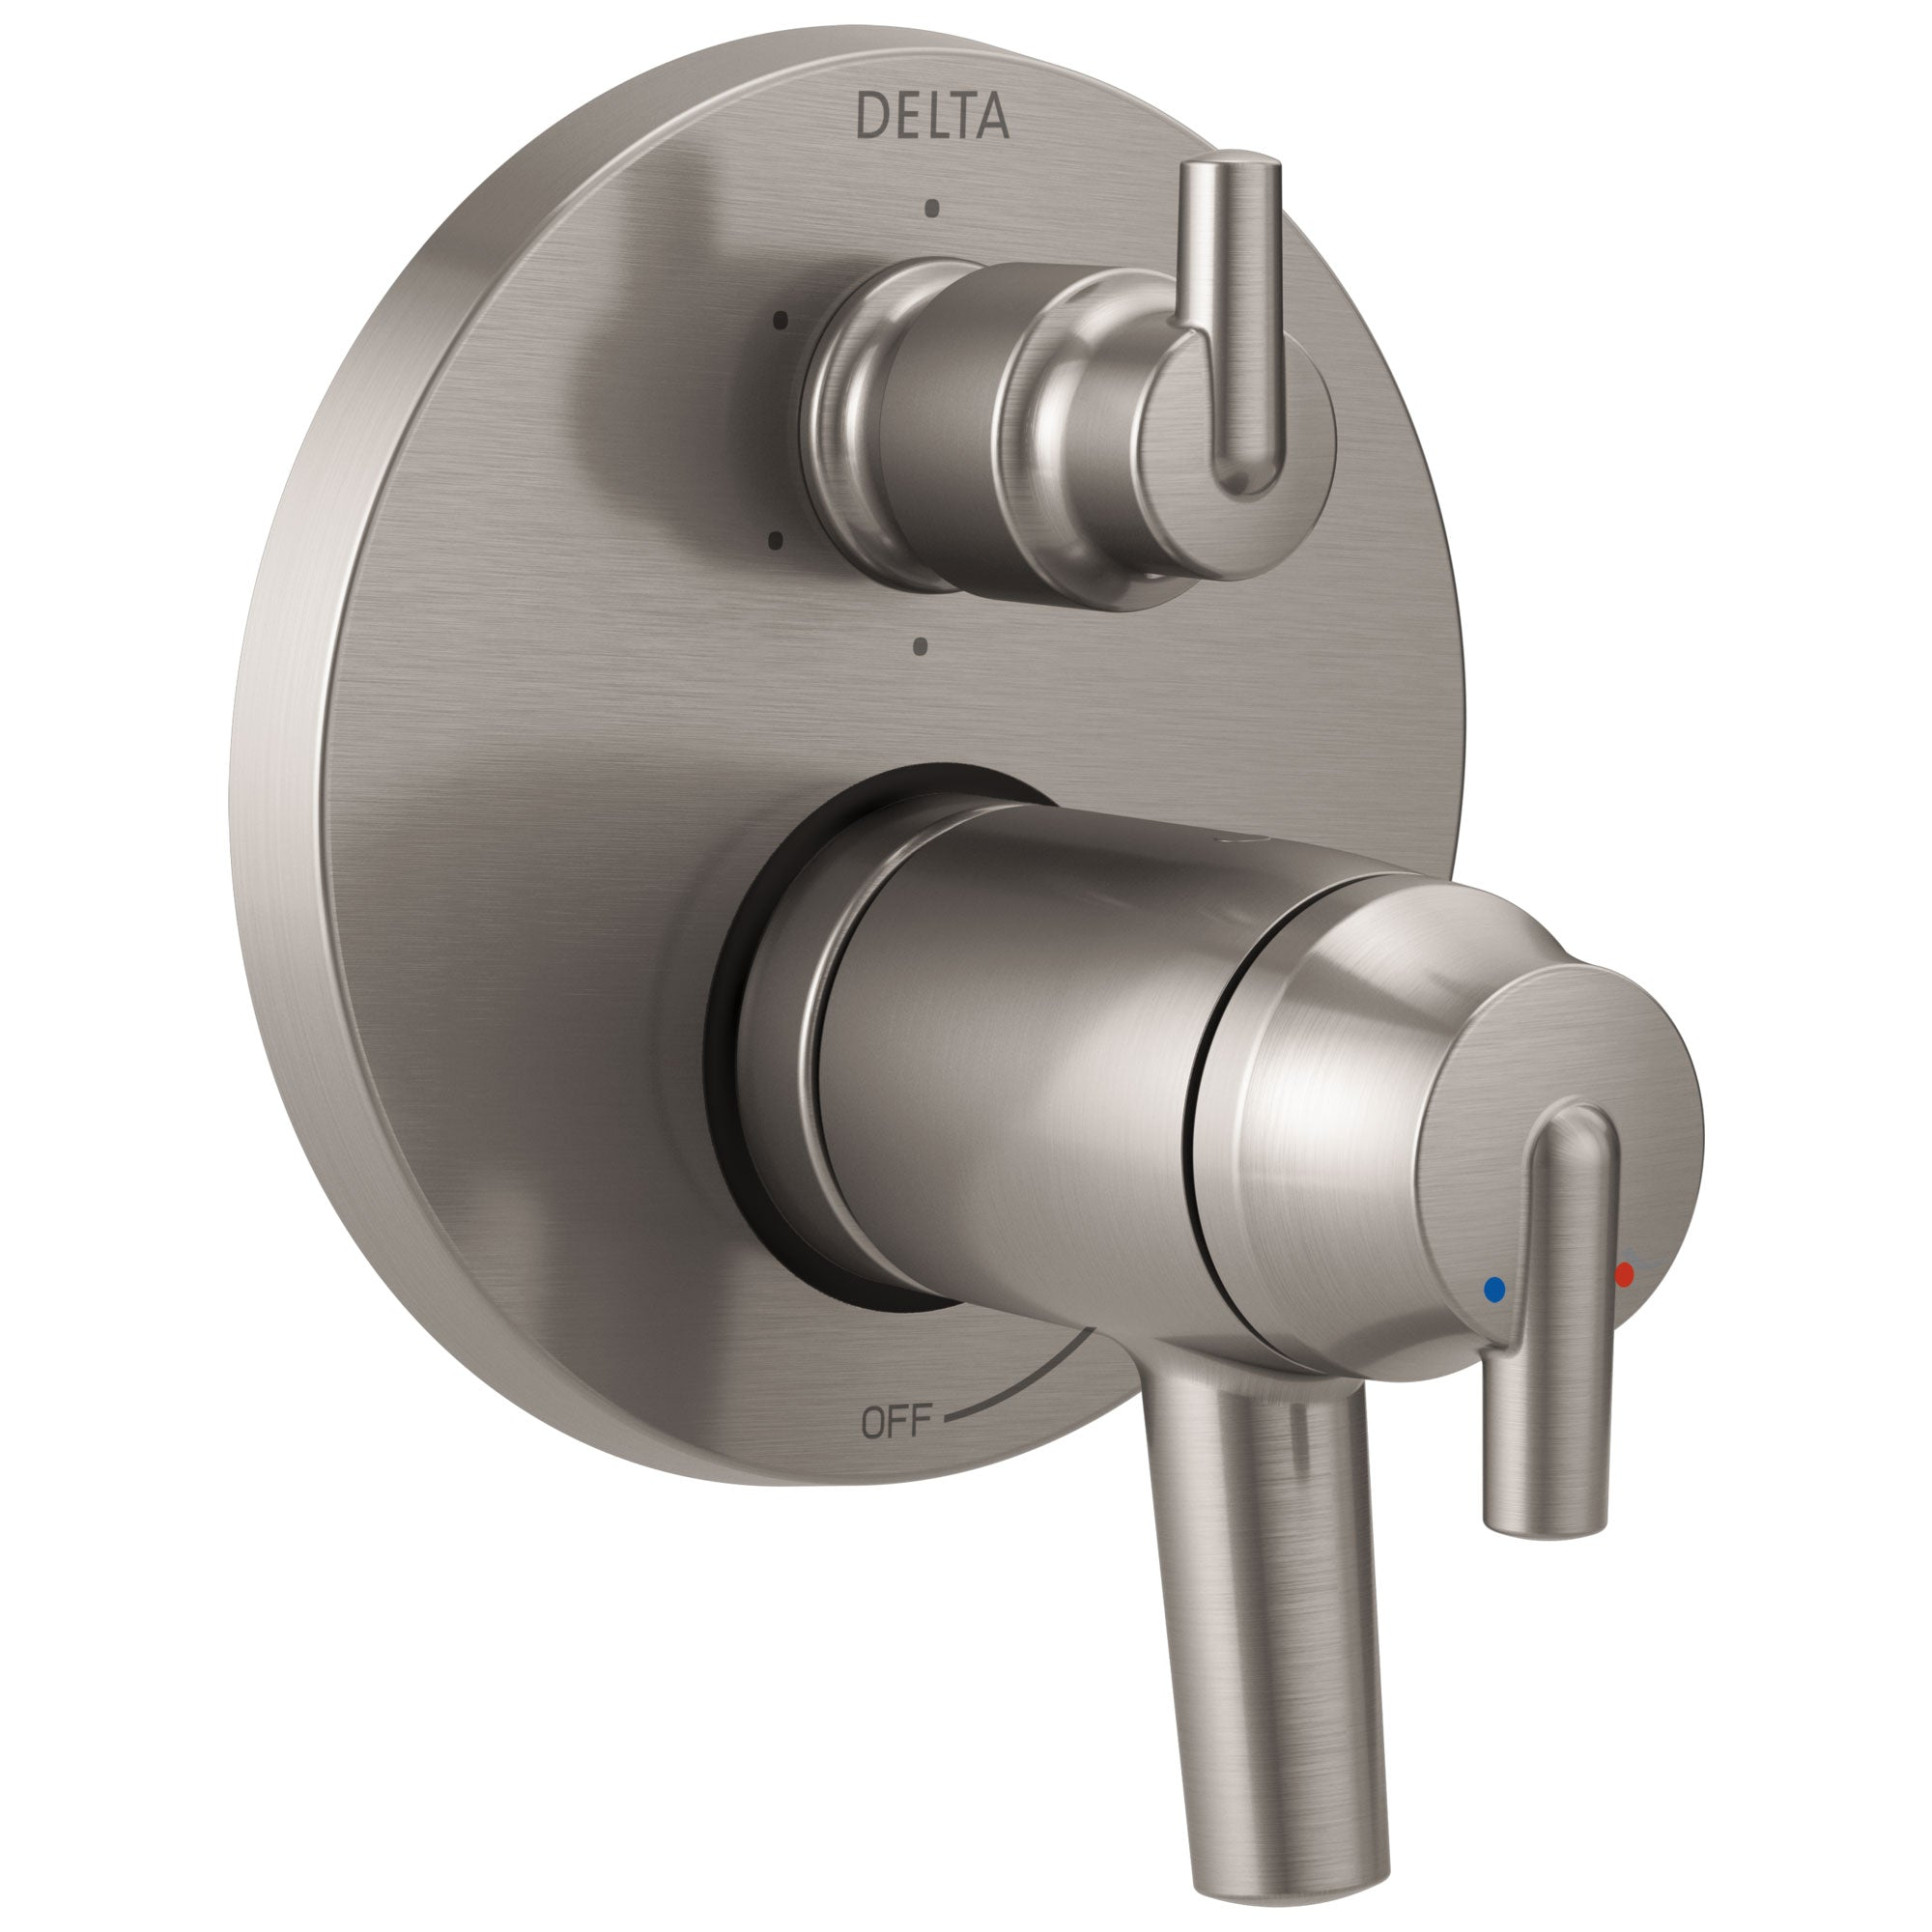 Delta Trinsic Collection Stainless Steel Finish Thermostatic Shower Faucet Control with 6-Setting Integrated Diverter Trim (Requires Valve) DT27T959SS